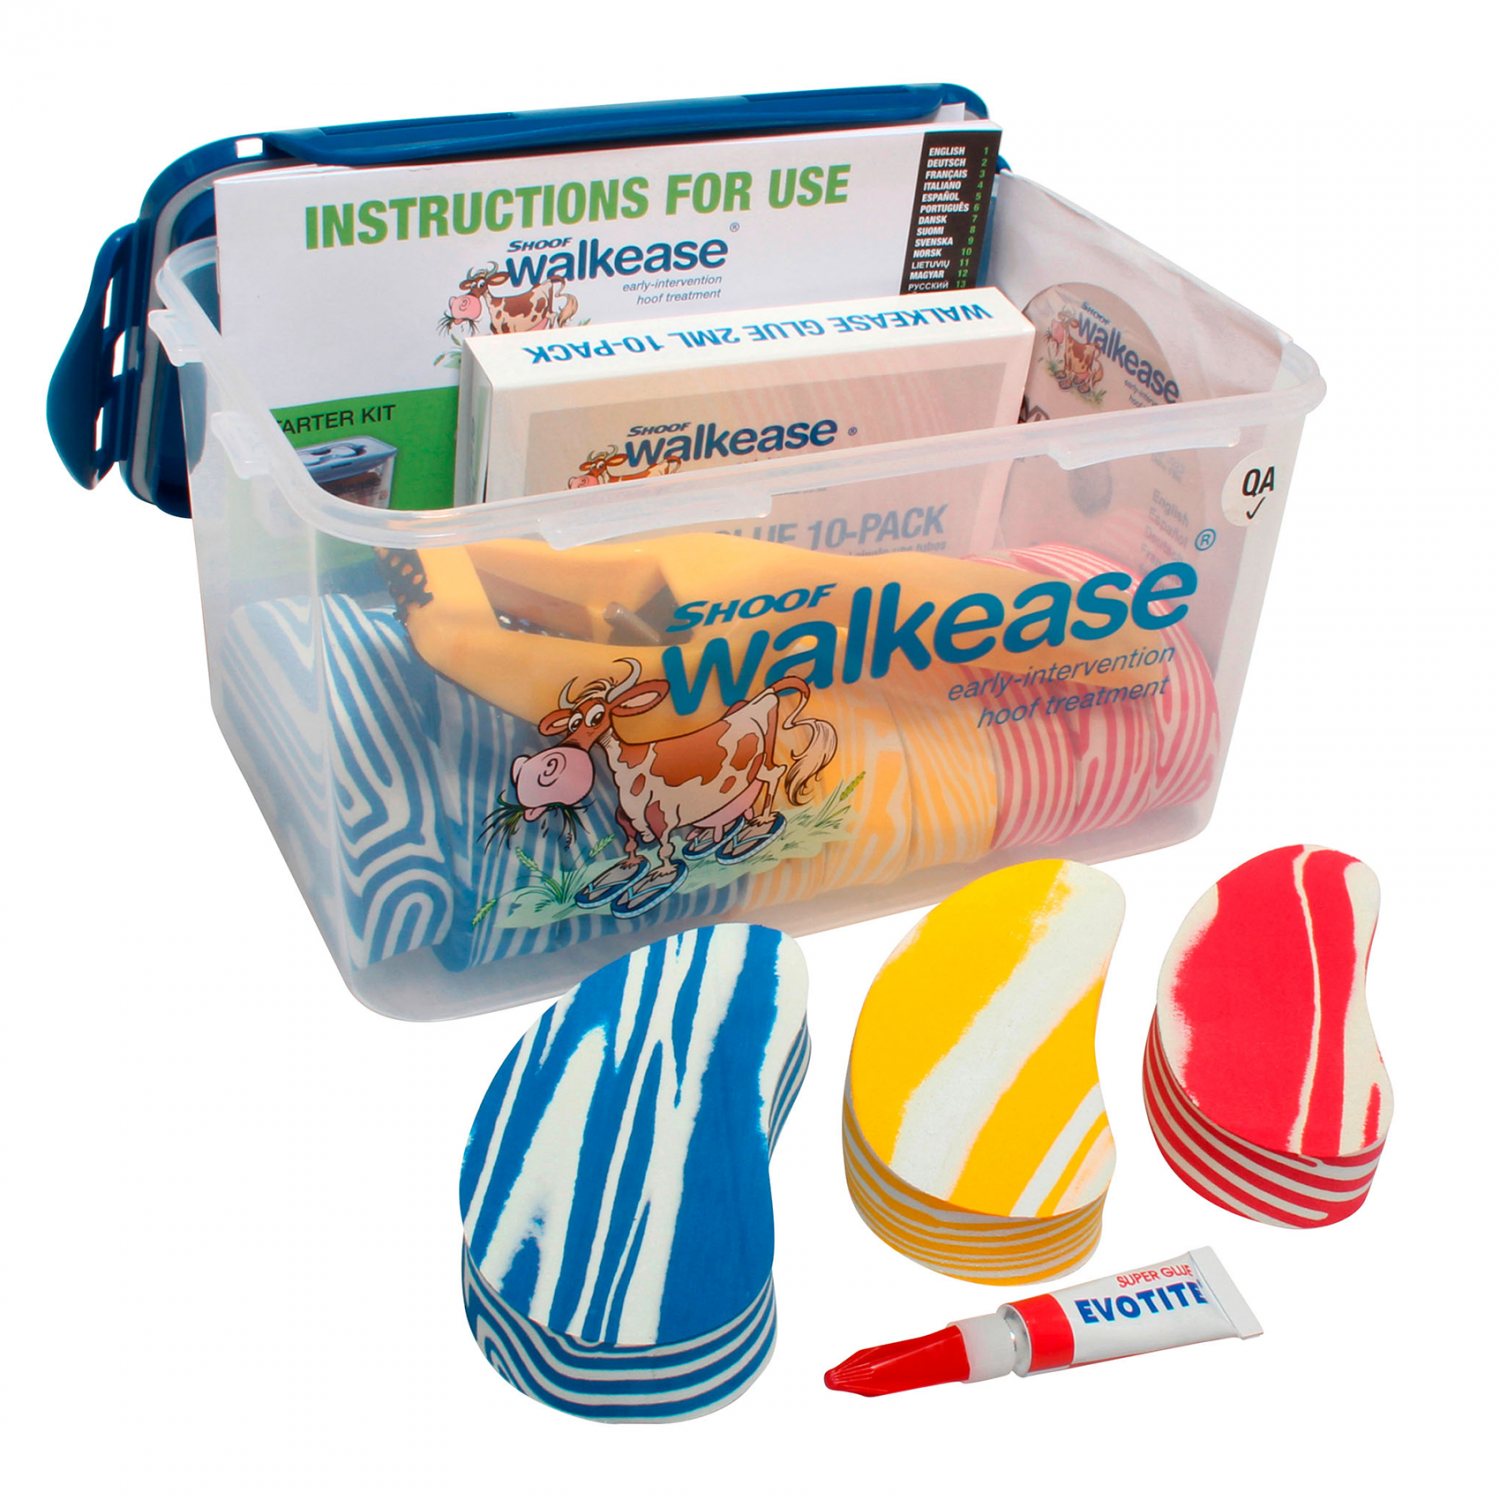 Walkease Mixed sizes Starterkit